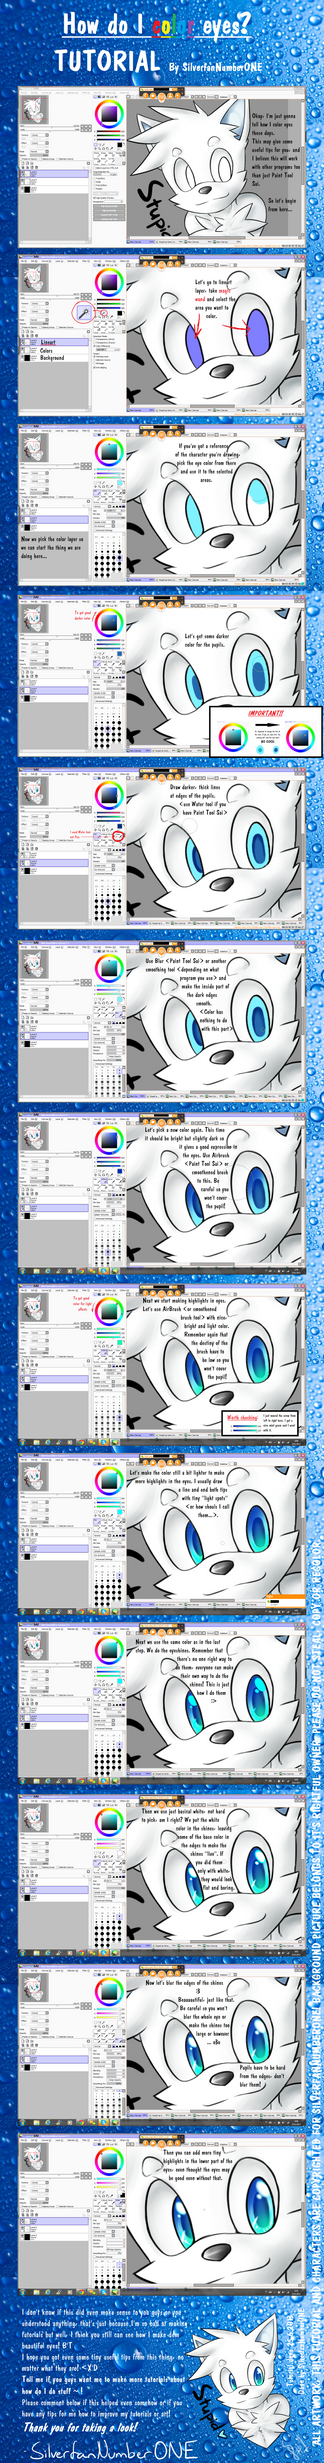 .:Tuto:. How do I color EYES? by SilverfanNumberONE